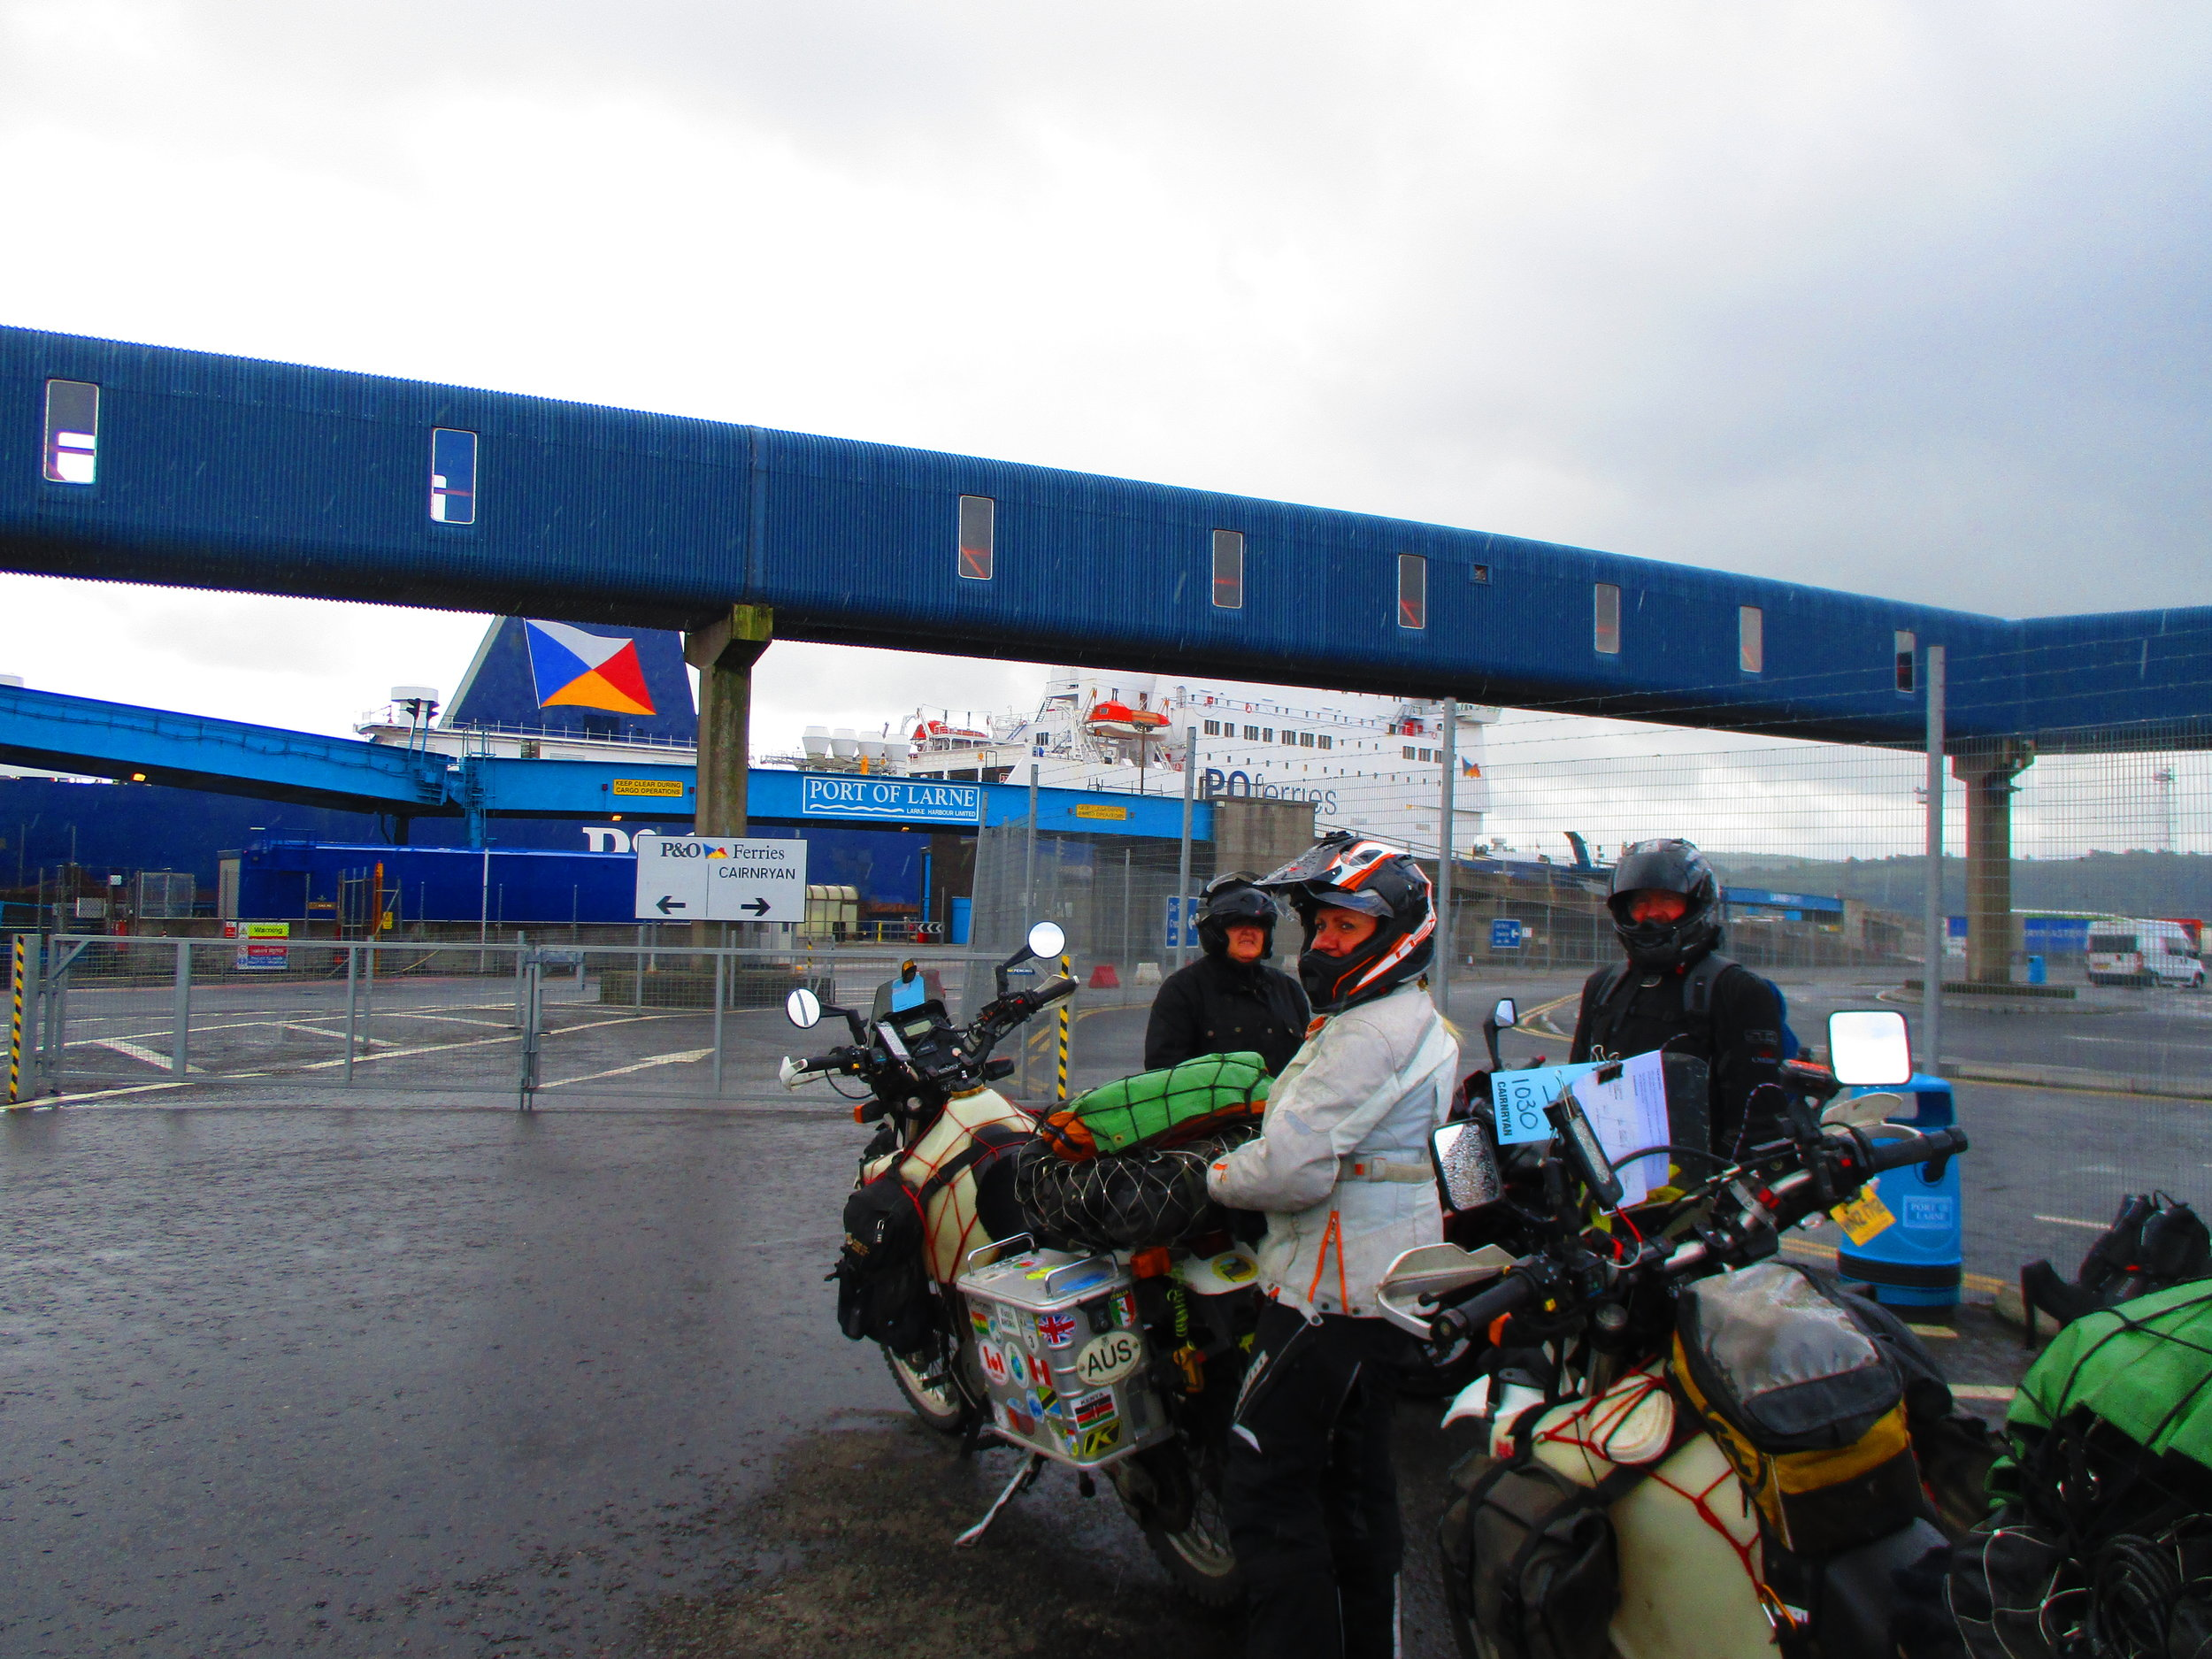 Waiting to board ferry at Larne, Northern Ireland to sail to Cairnryan, Scotland.